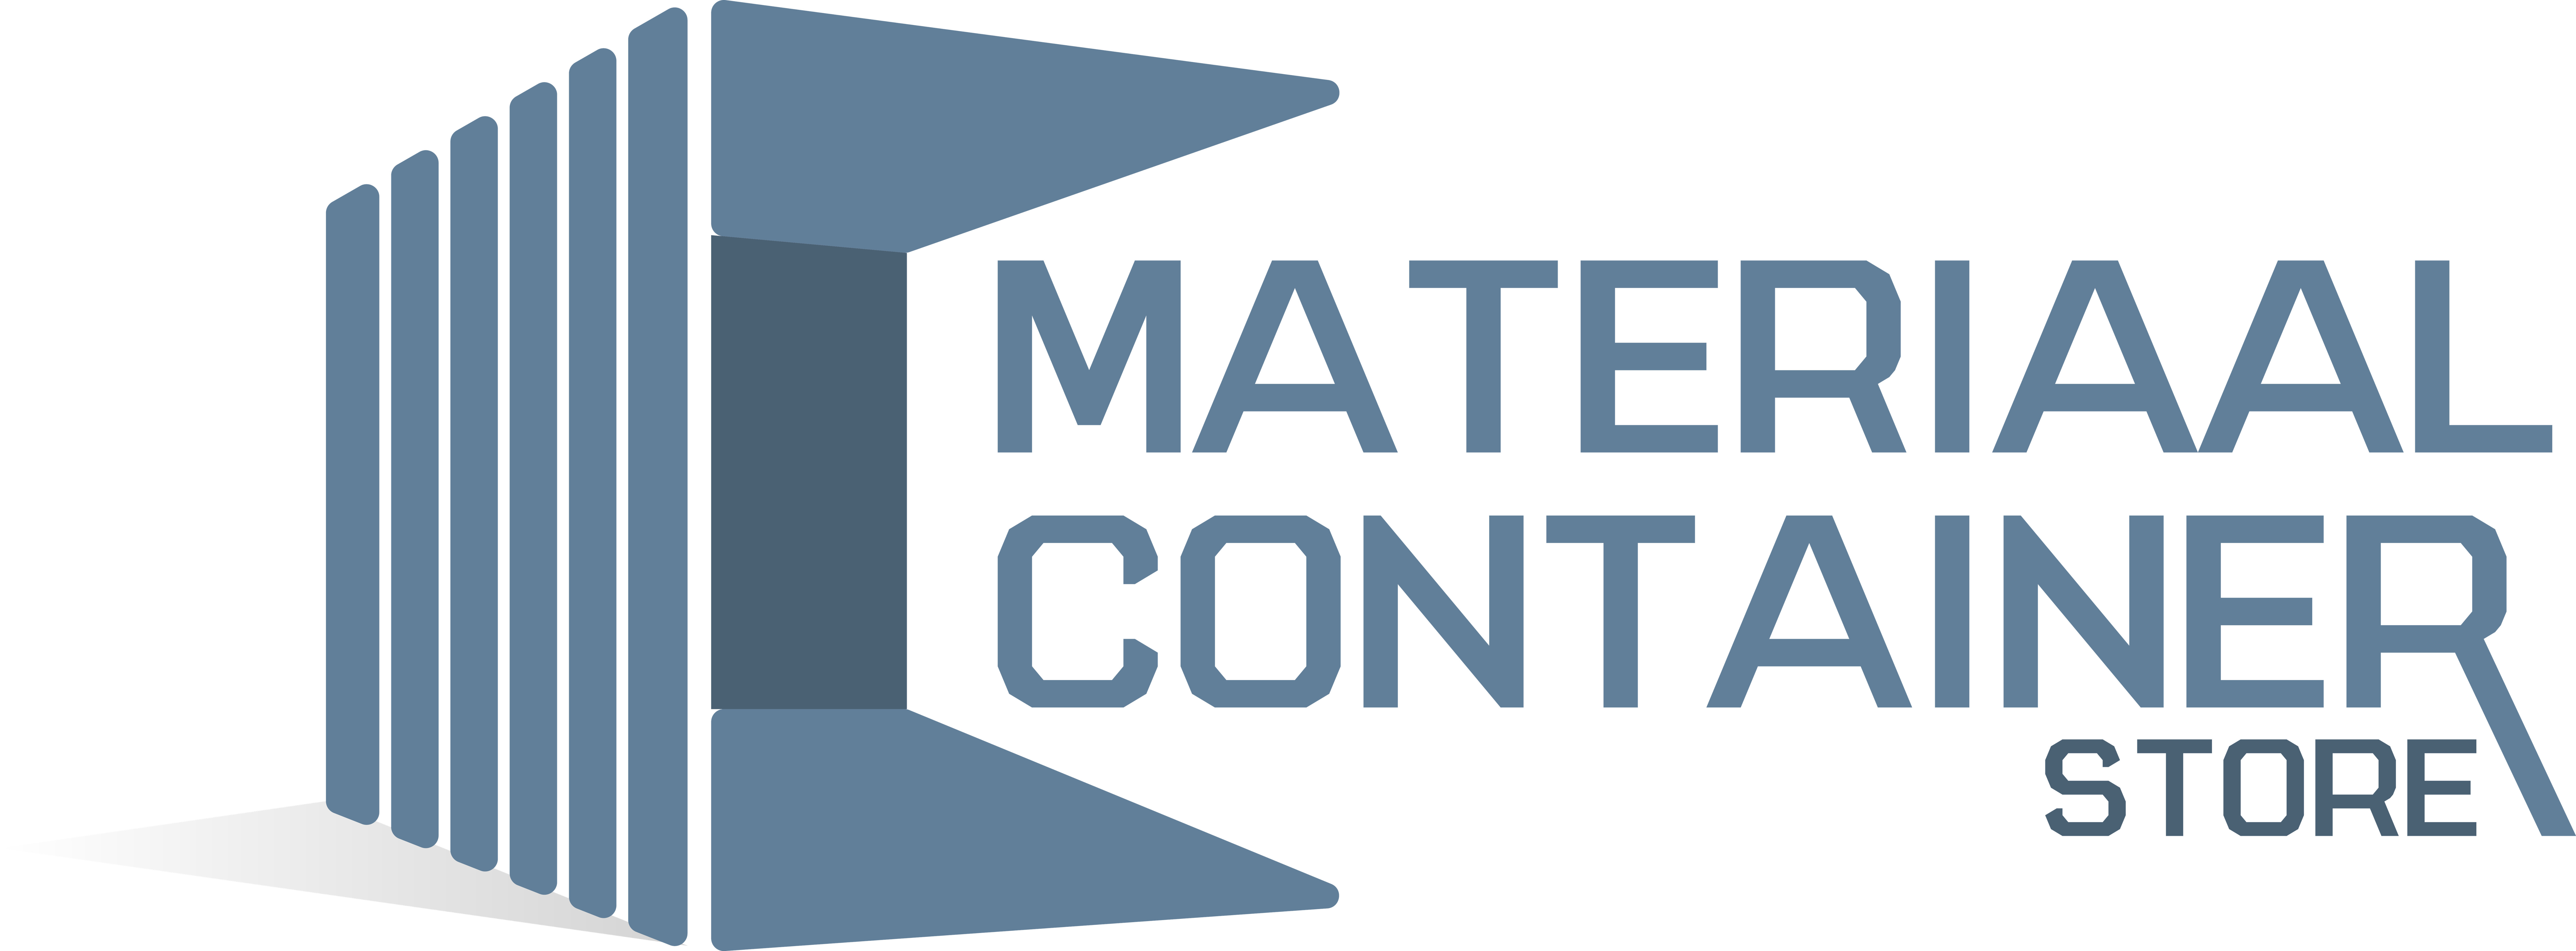 Materiaalcontainerstore